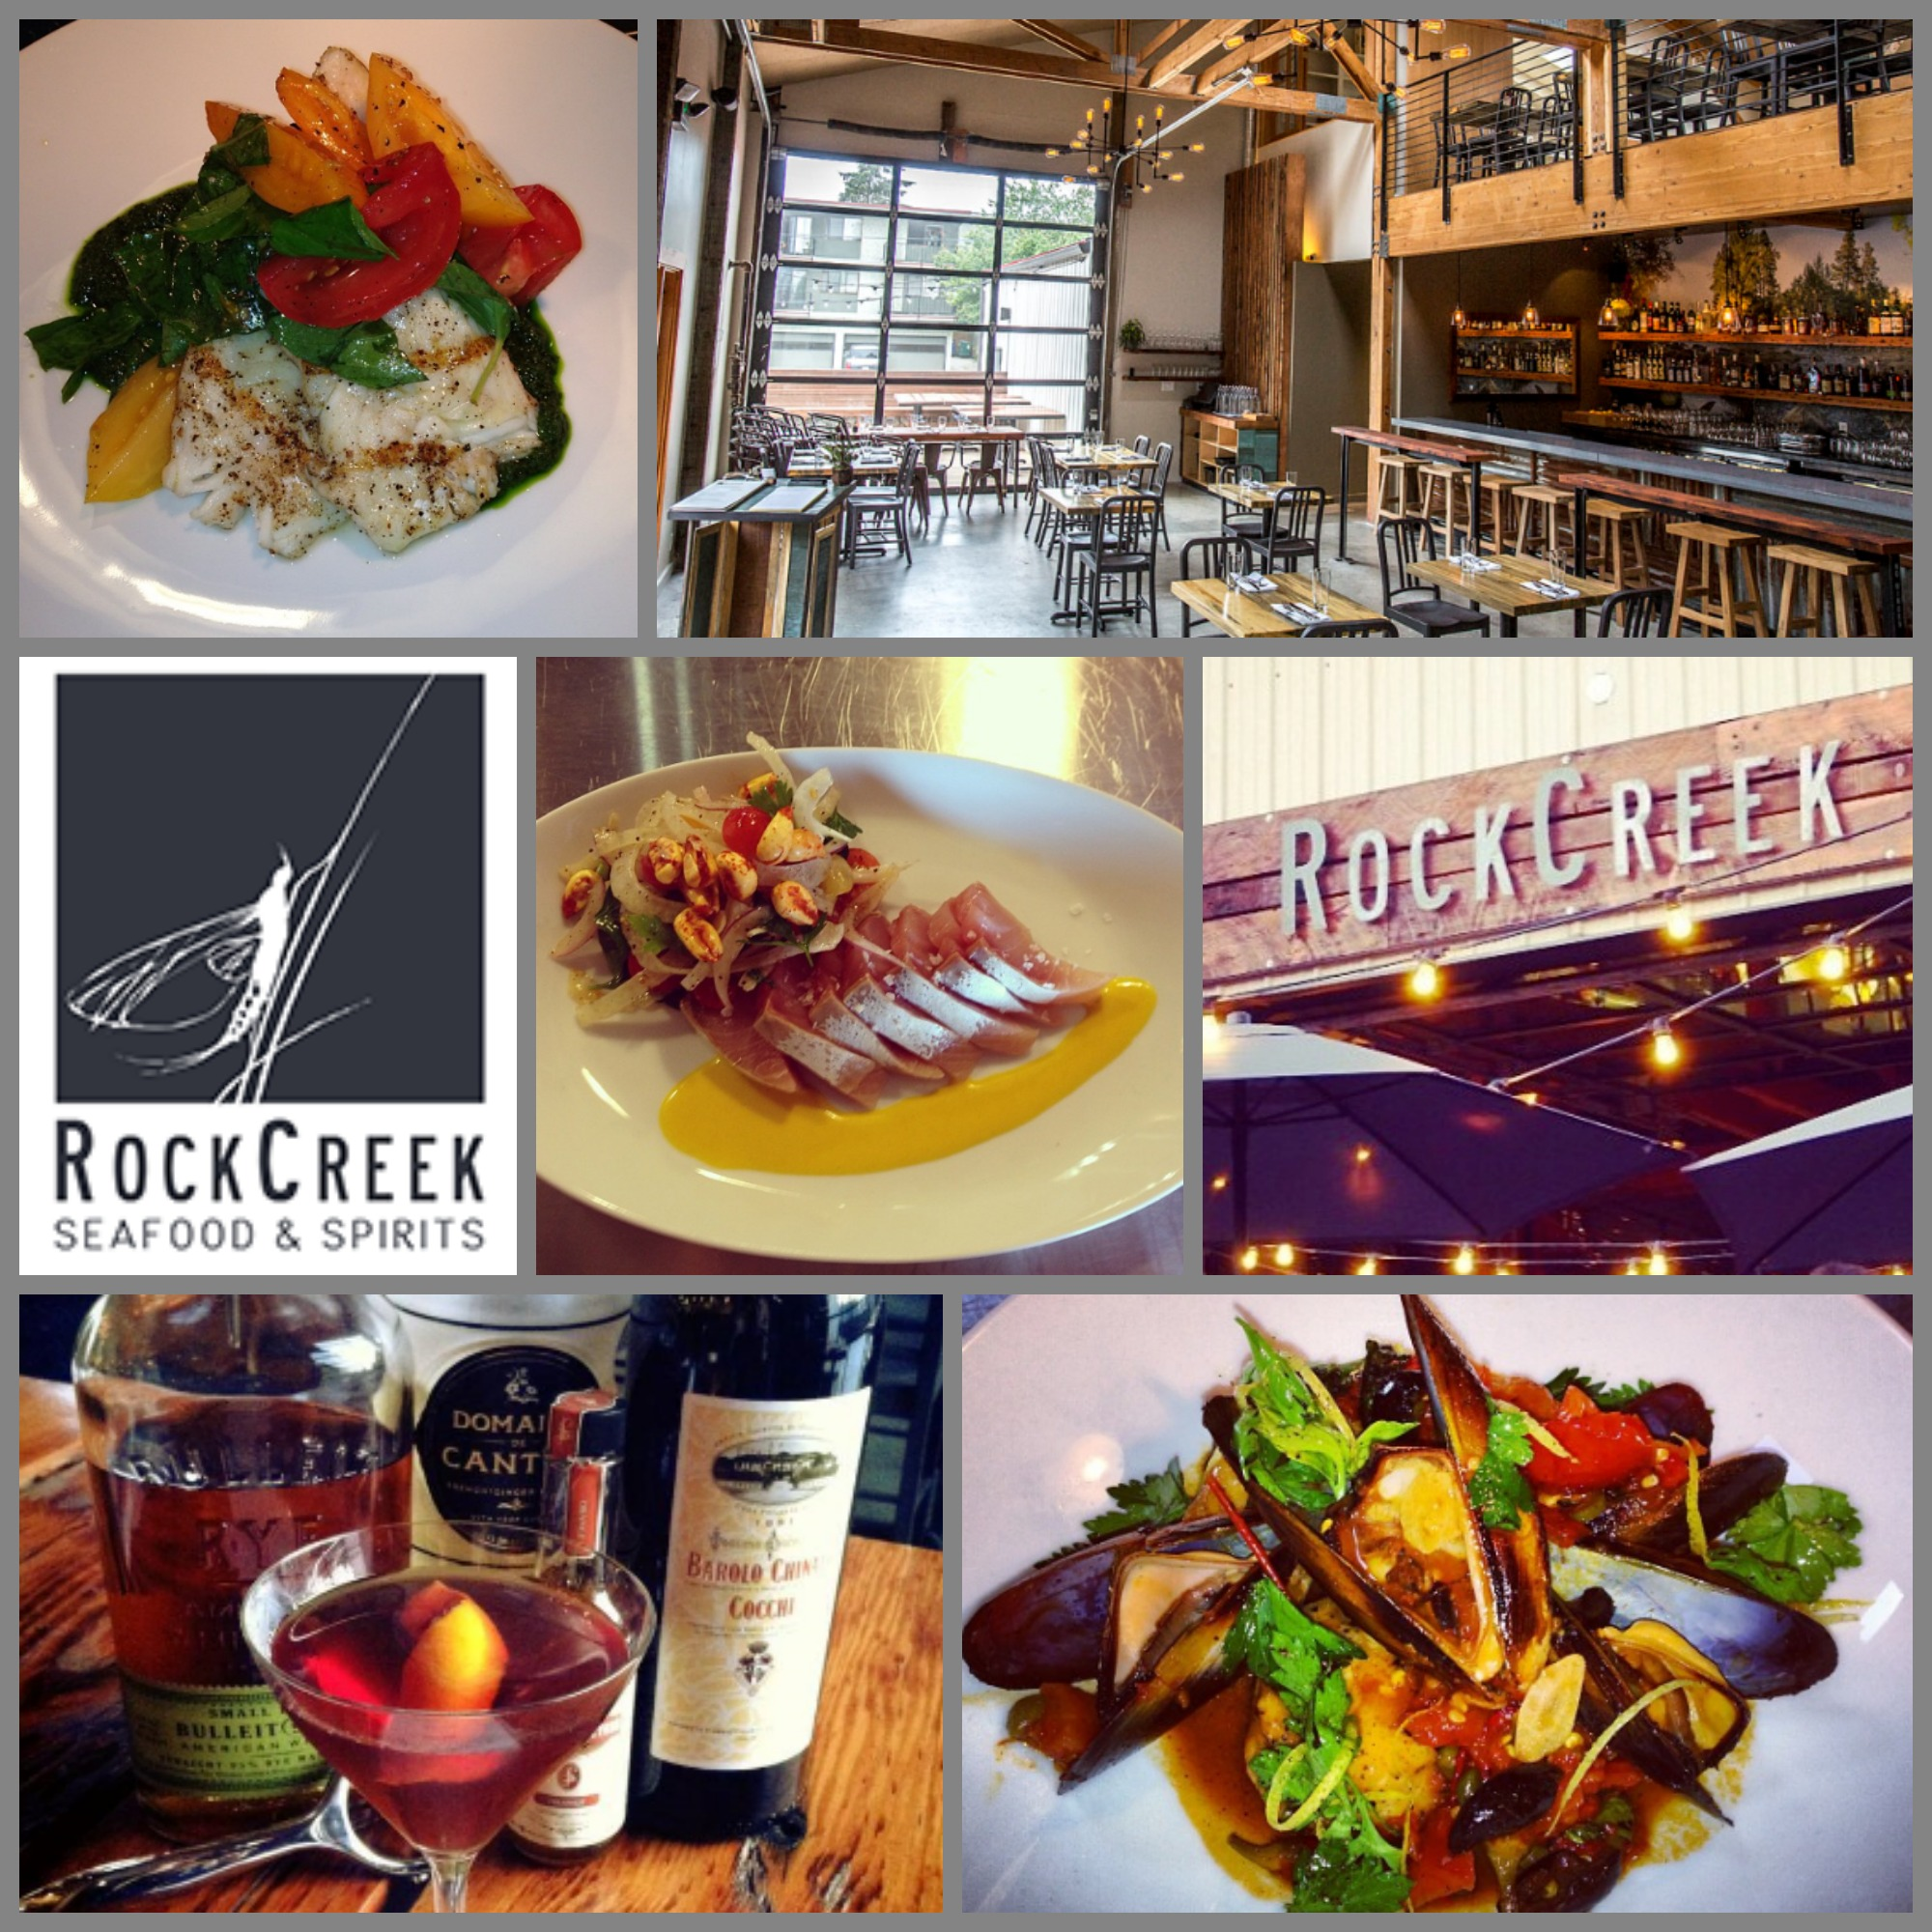 RockCreek collage